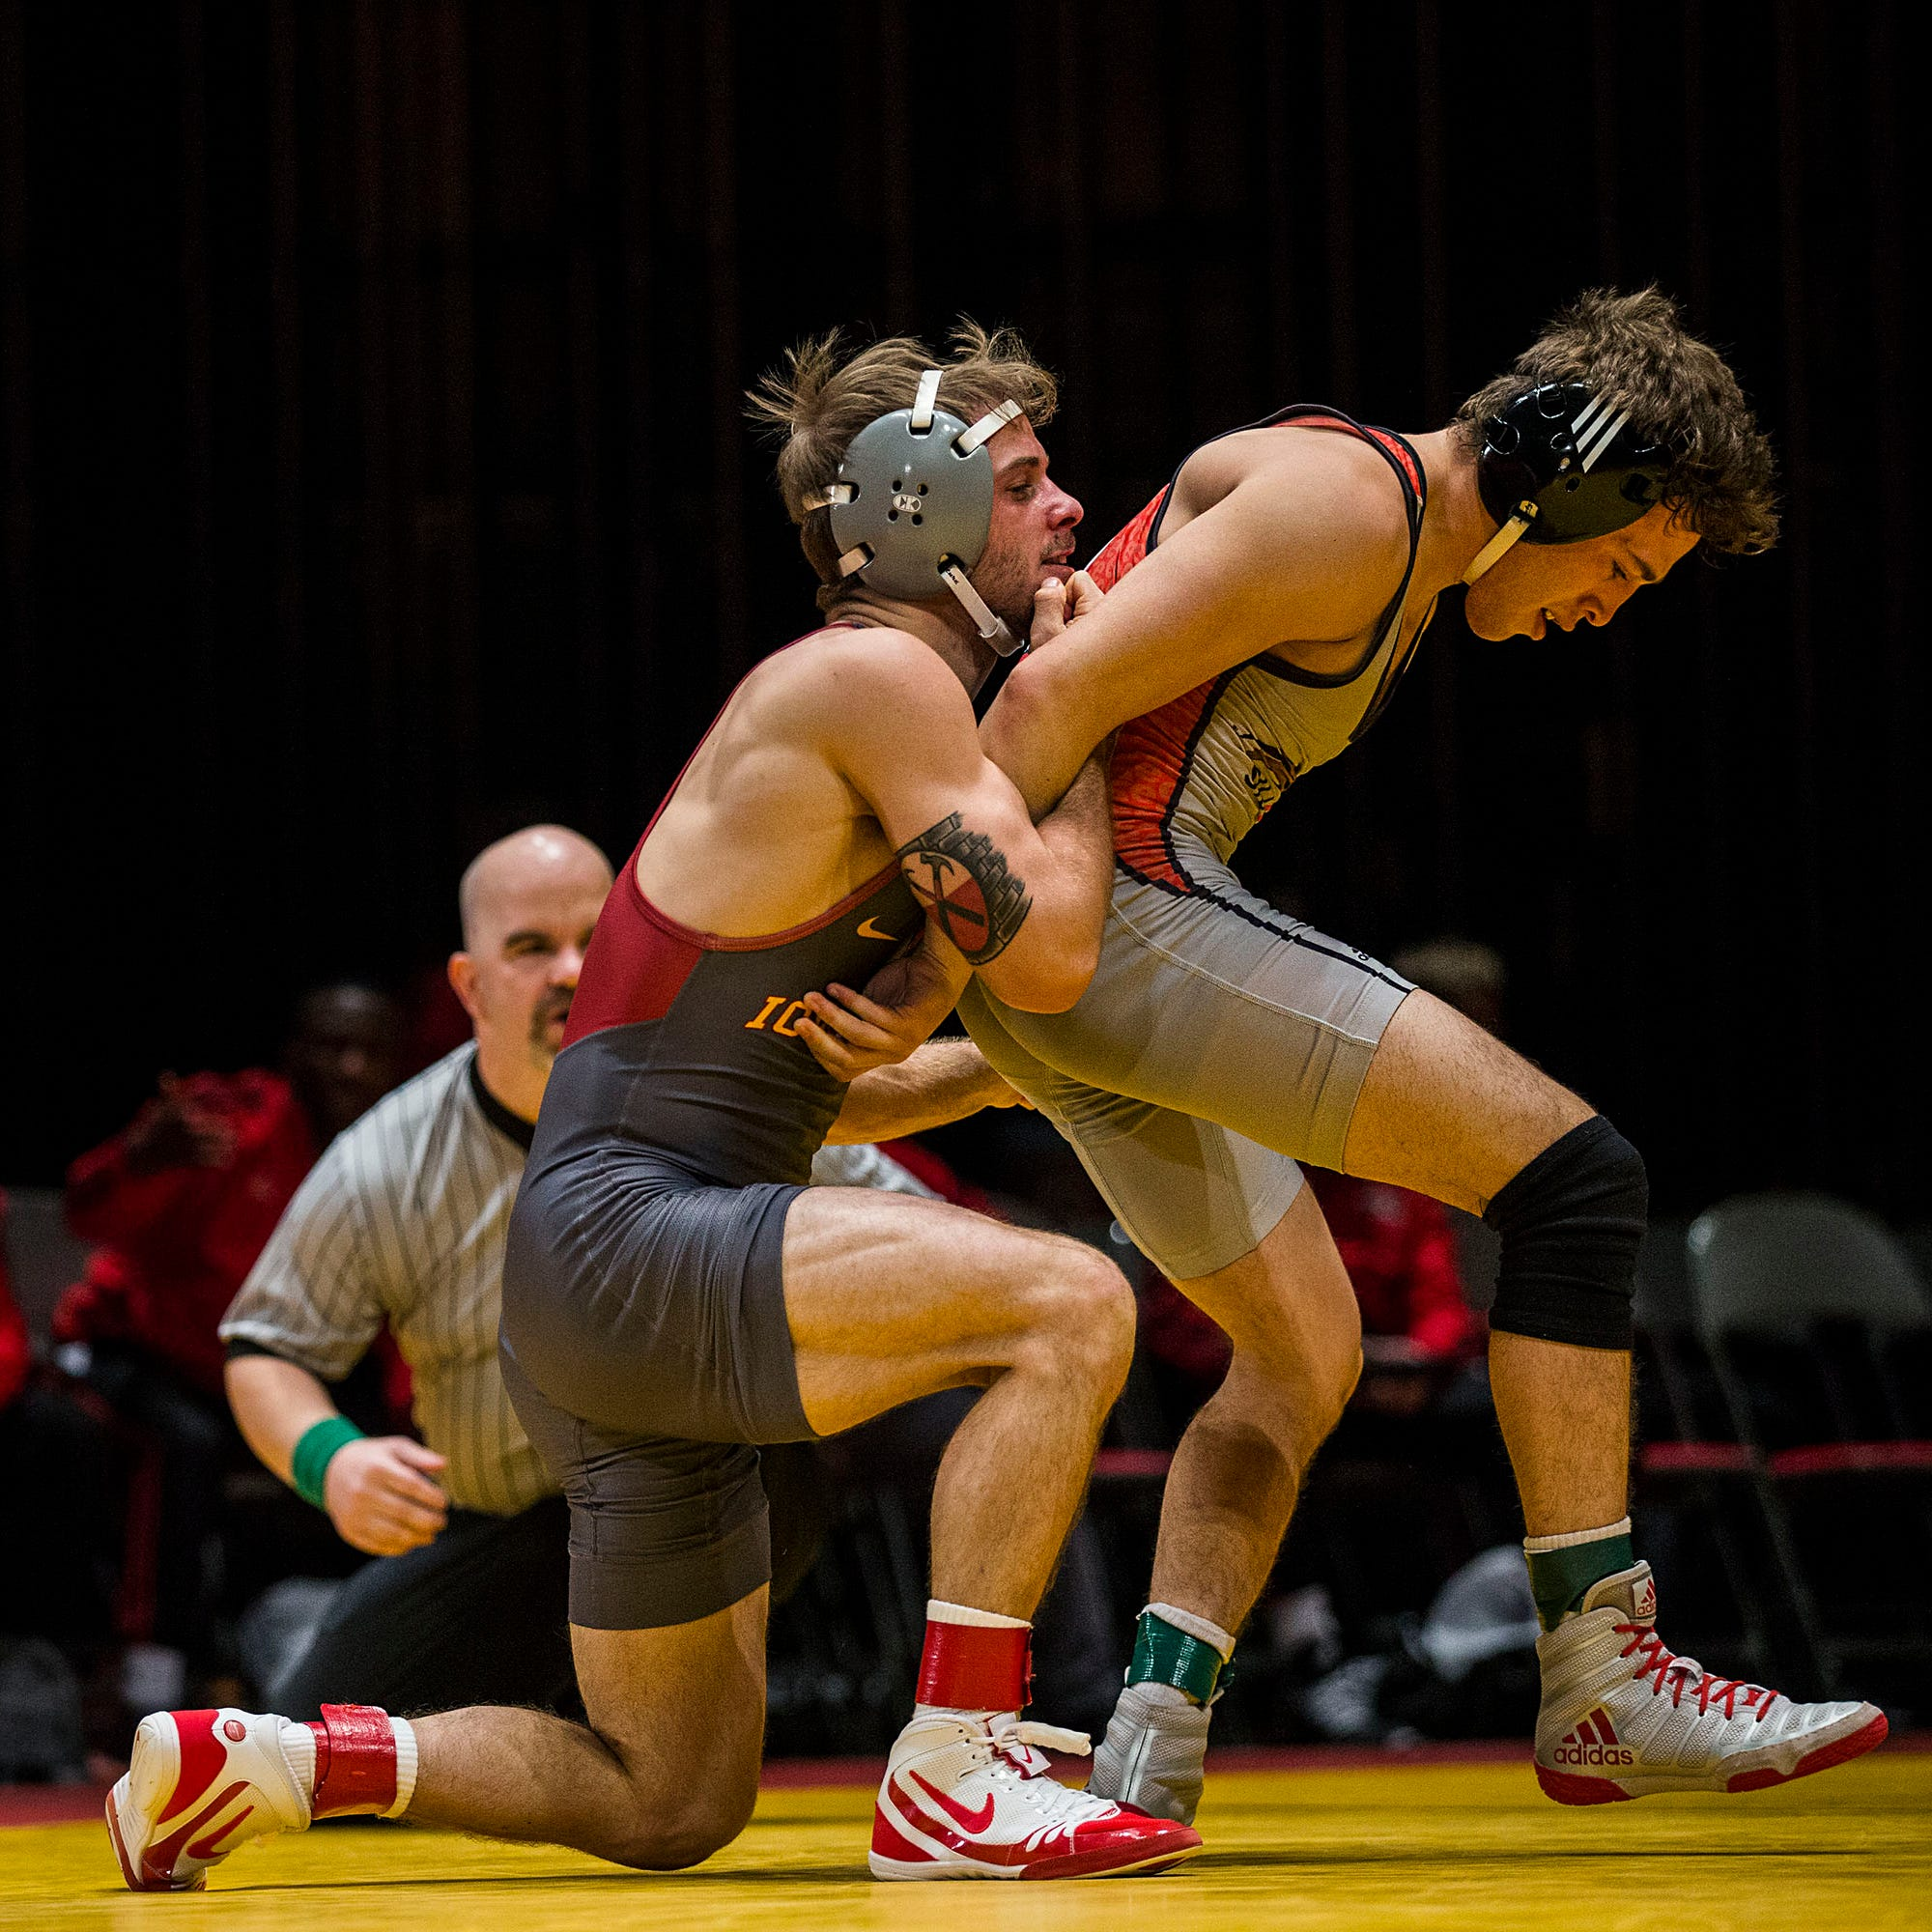 Cyclones wrestler Alex Mackall is flourishing after transferring to Iowa State